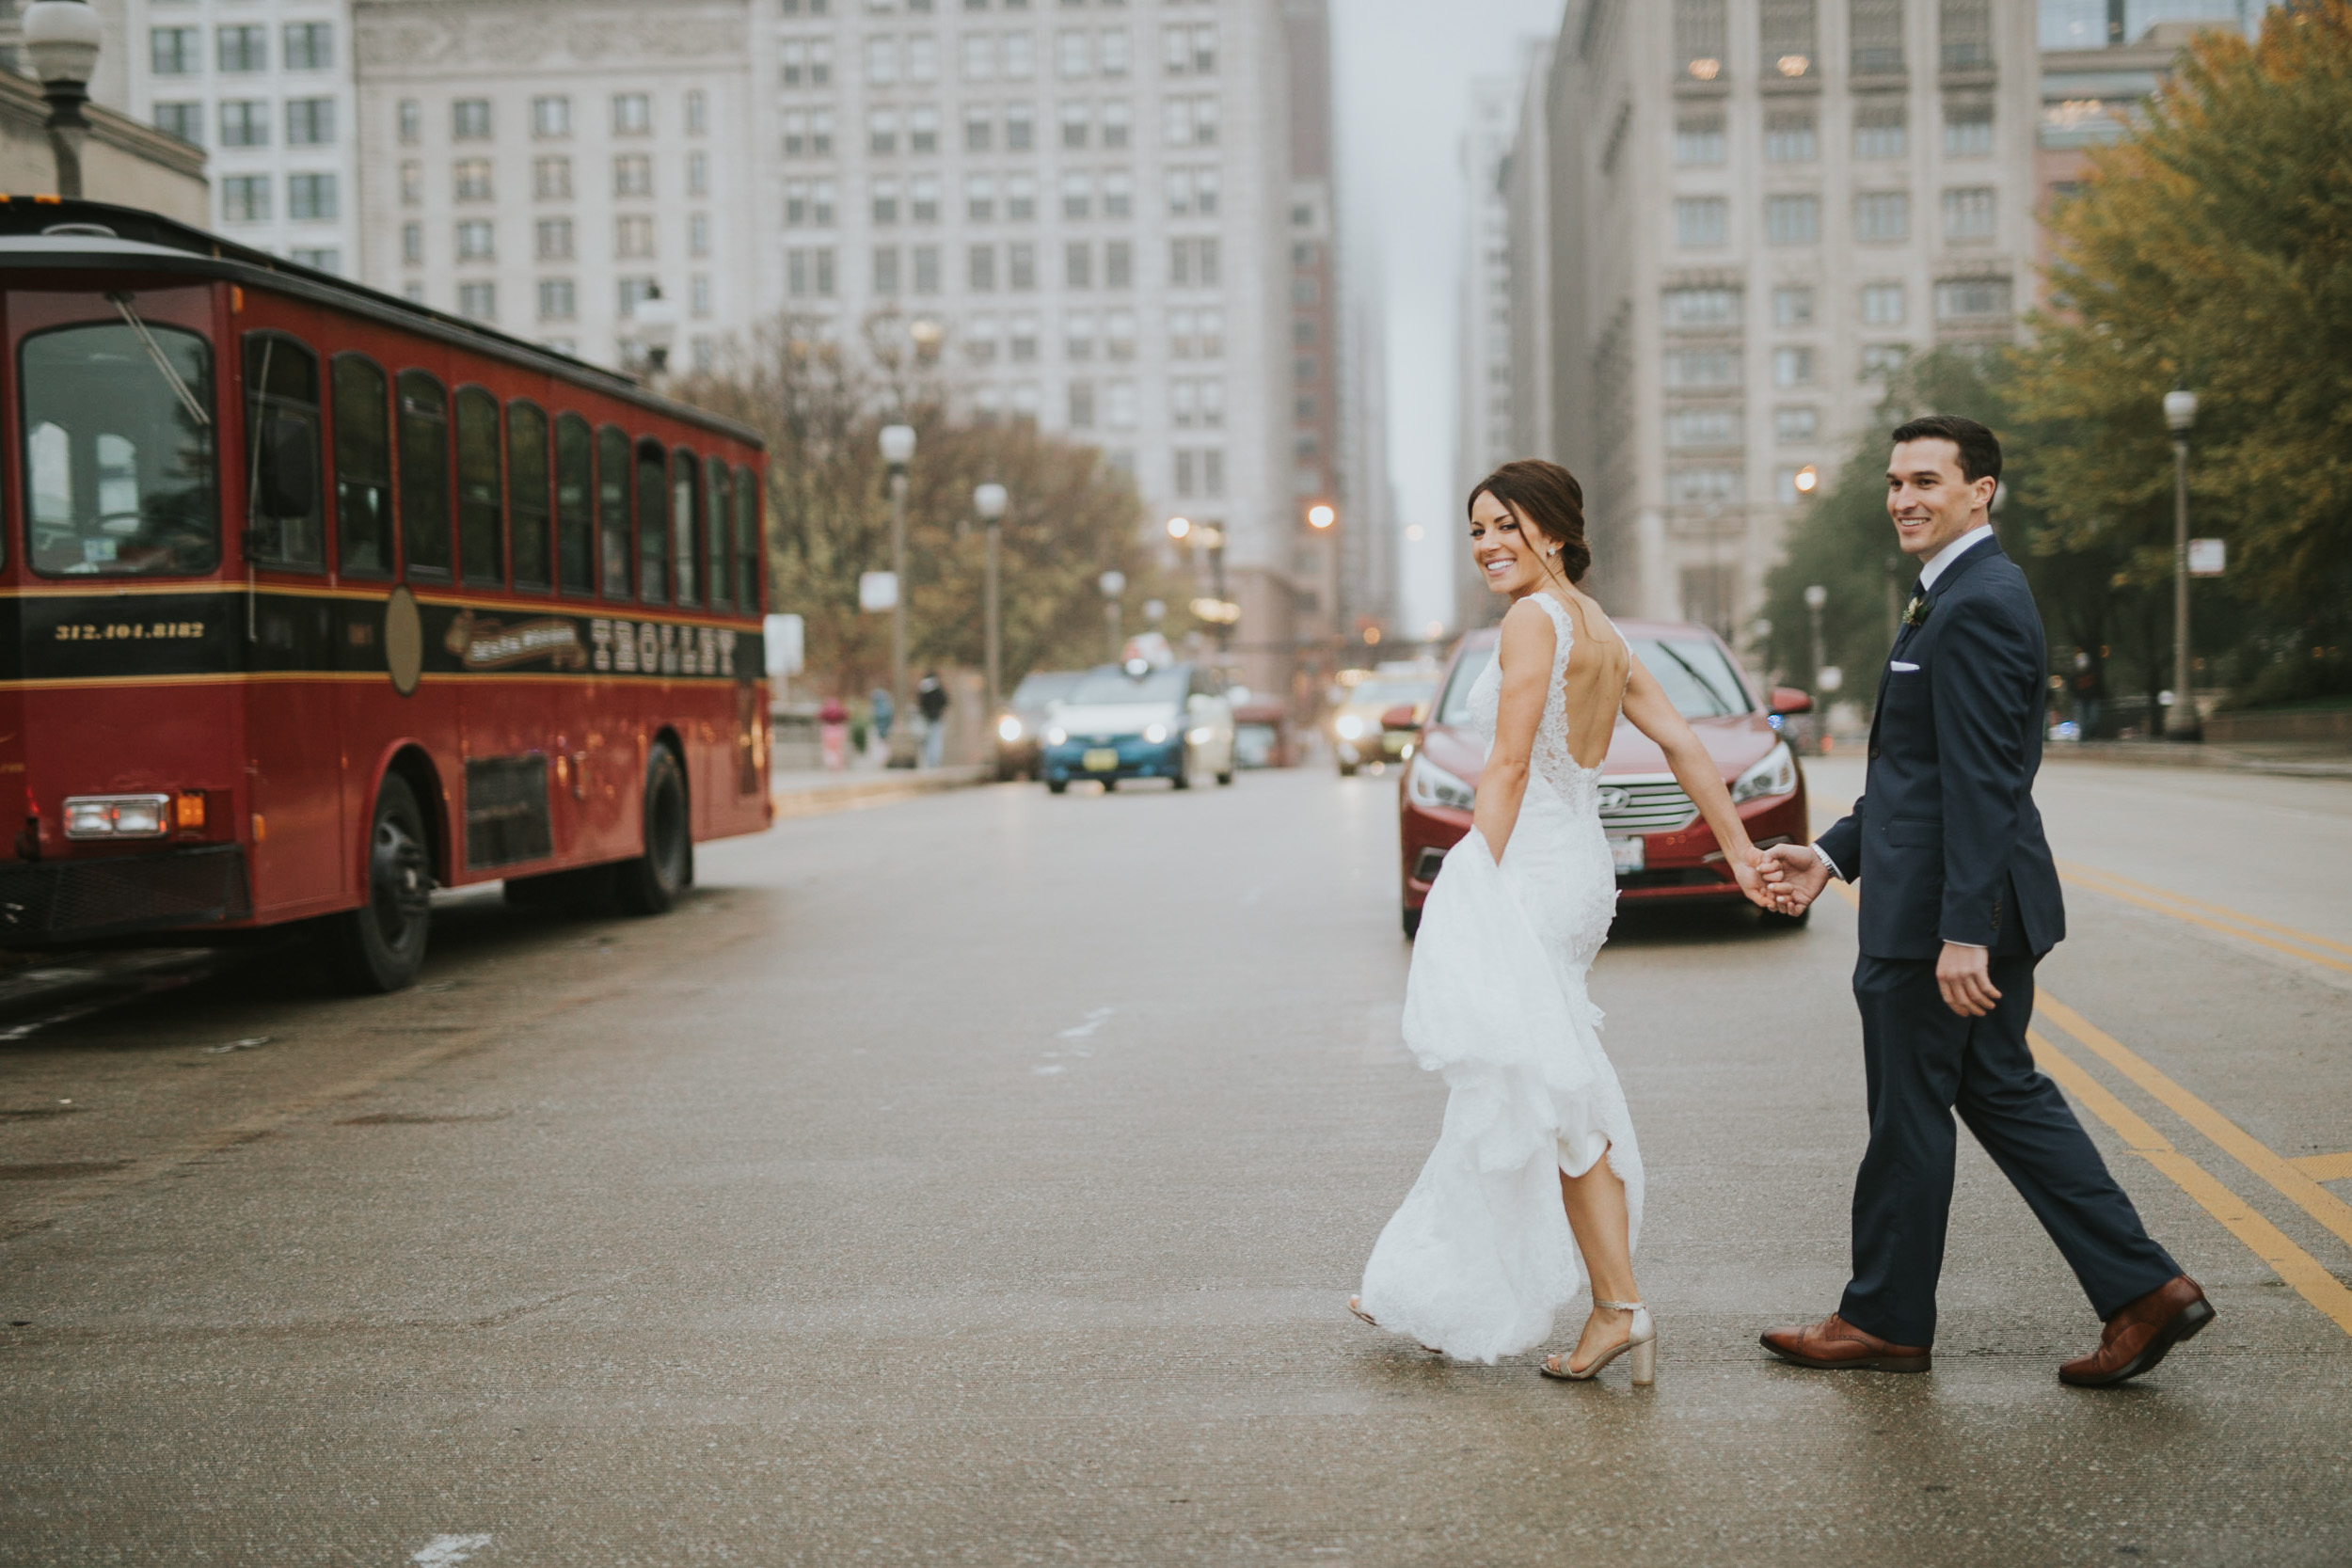 HaroldWashingtonLibraryWedding_Polly C Photography 1704155319.jpg